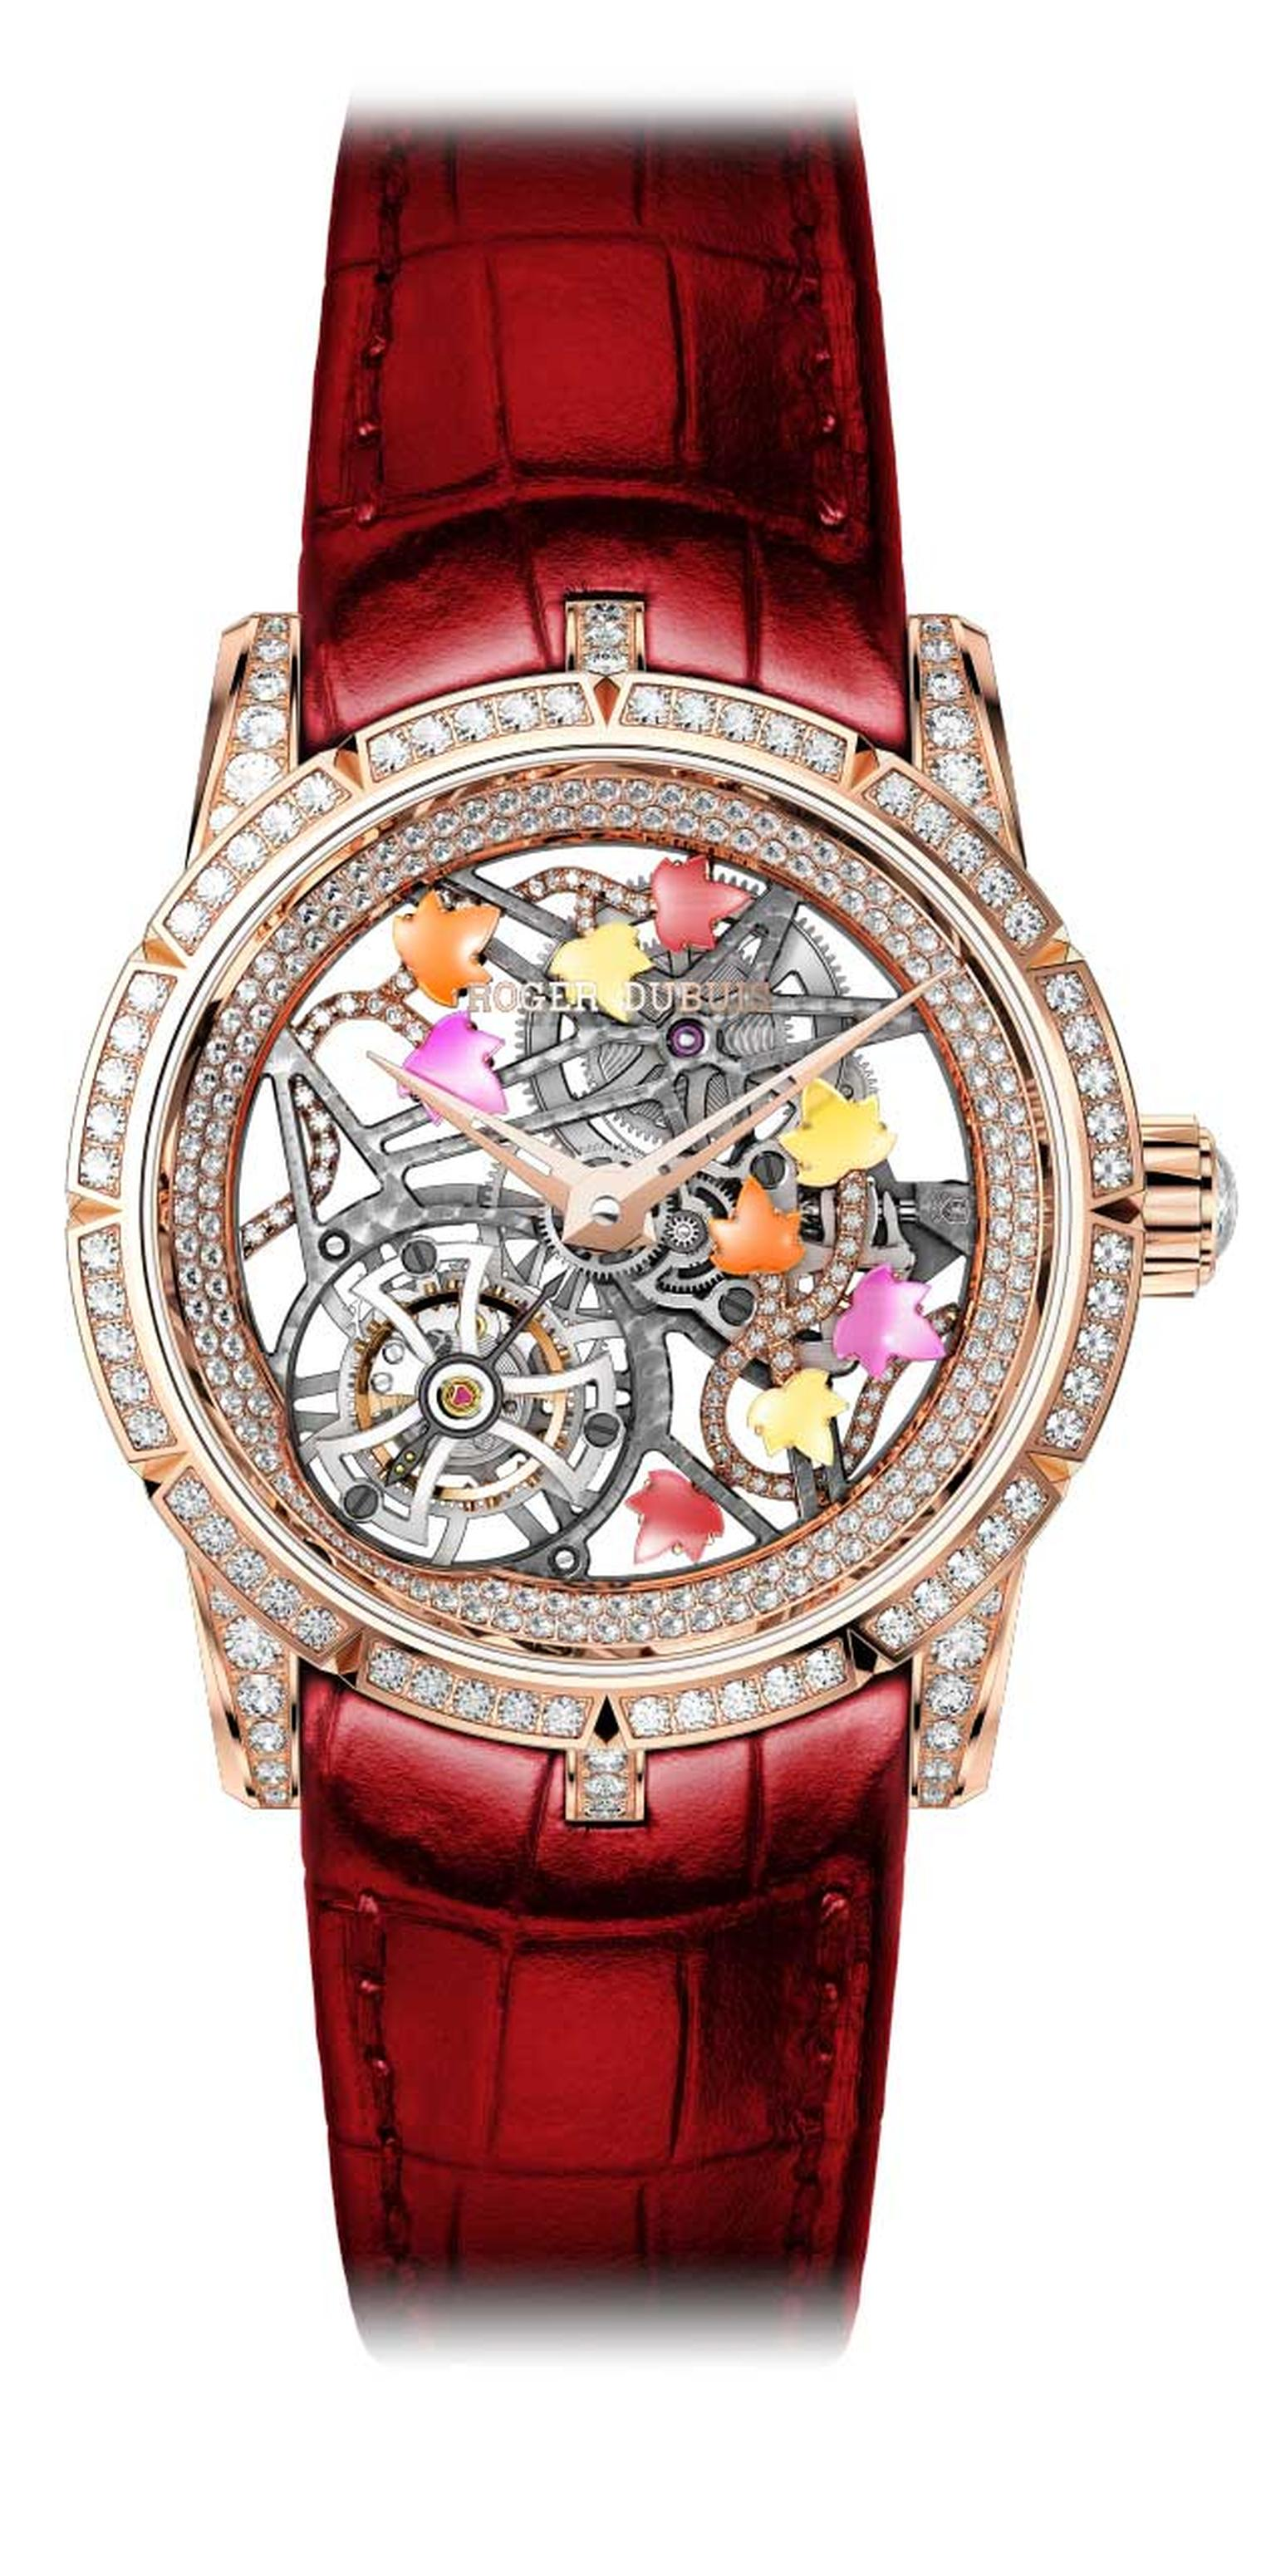 Roger Dubuis Excalibur Creative Skeleton Brocéliande ladies' watch features a flying tourbillon, semi-precious stones on the ivy leaves, and 3.44 carats worth of diamonds sprinkled over the 42mm rose gold case.